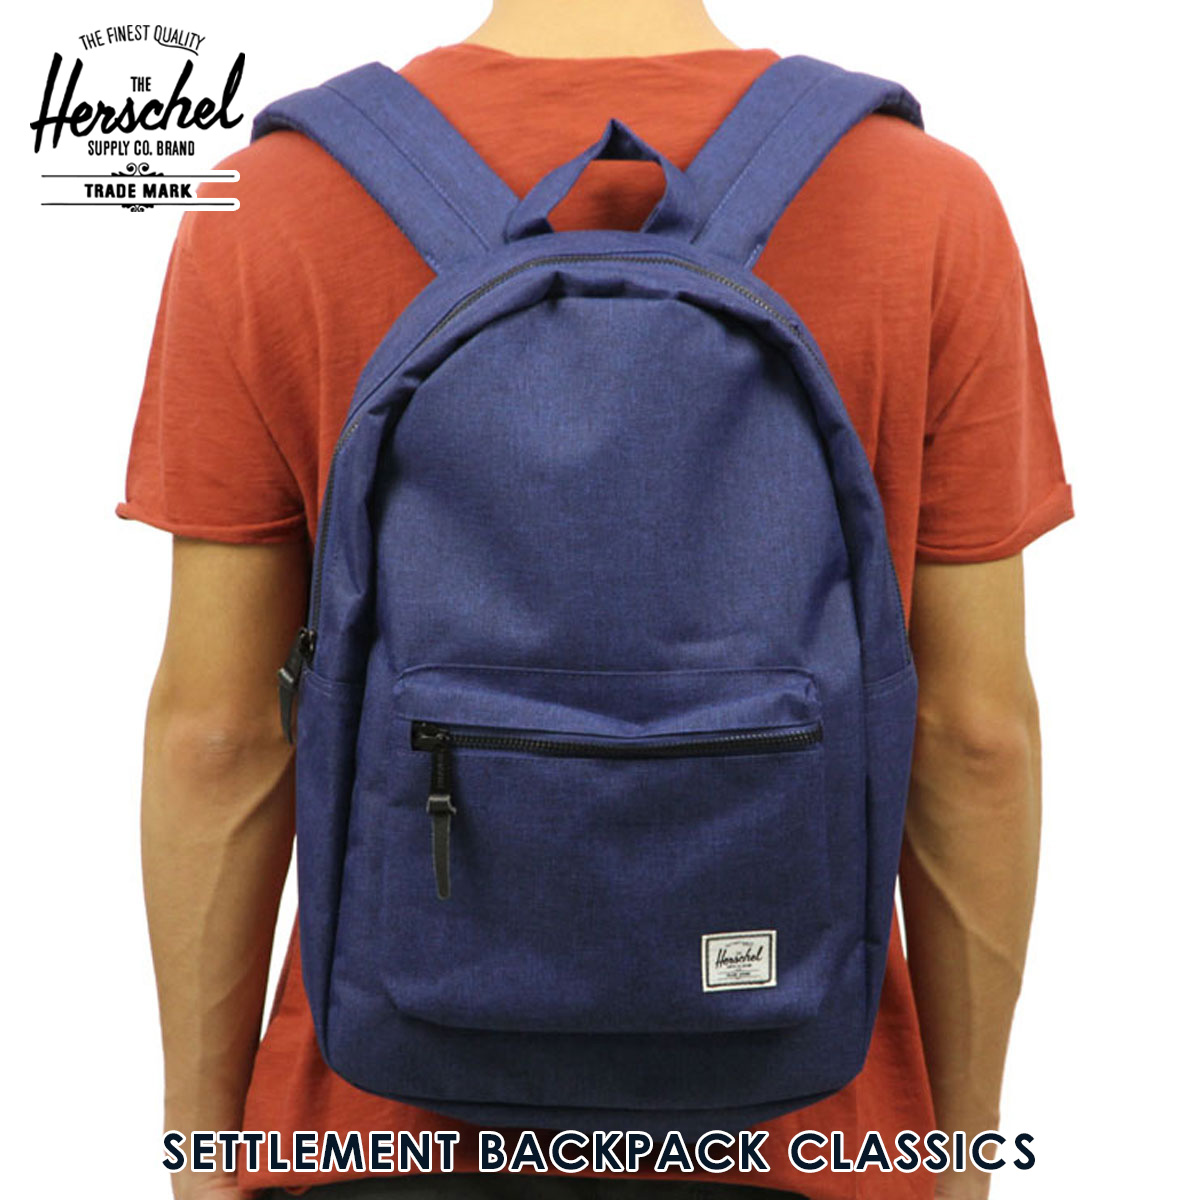 d071bbc96ea Hershel Herschel Supply regular store bag SETTLEMENT BACKPACK CLASSICS  10005-01335-OS ECLIPSE CROSSHATCH